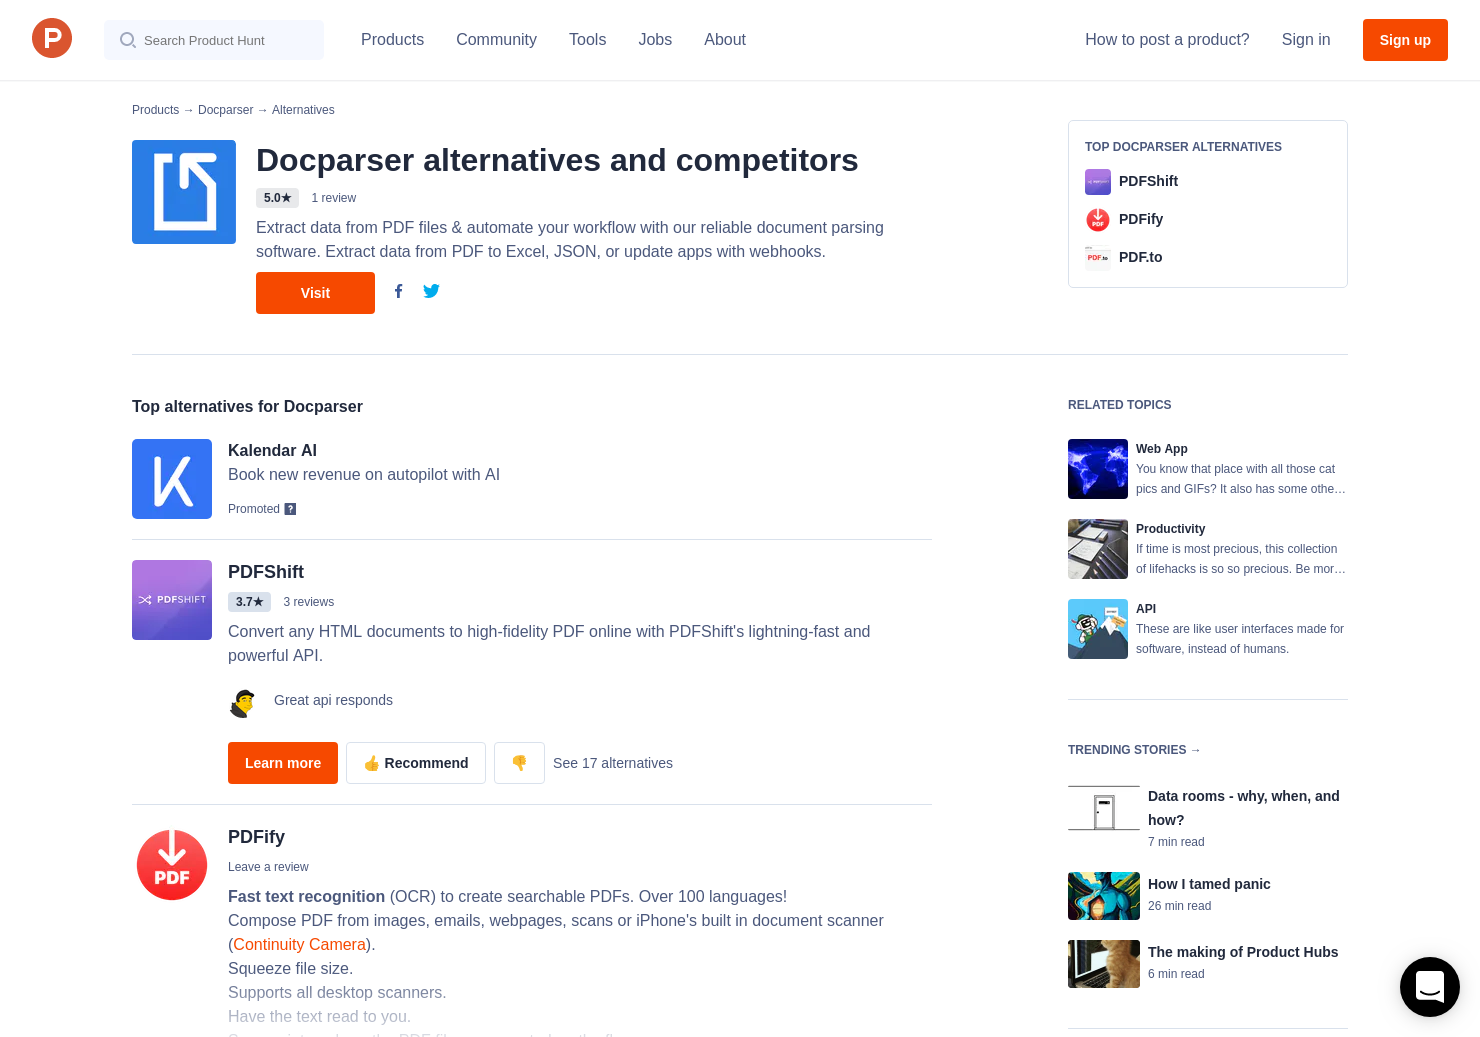 12 Alternatives to Docparser | Product Hunt